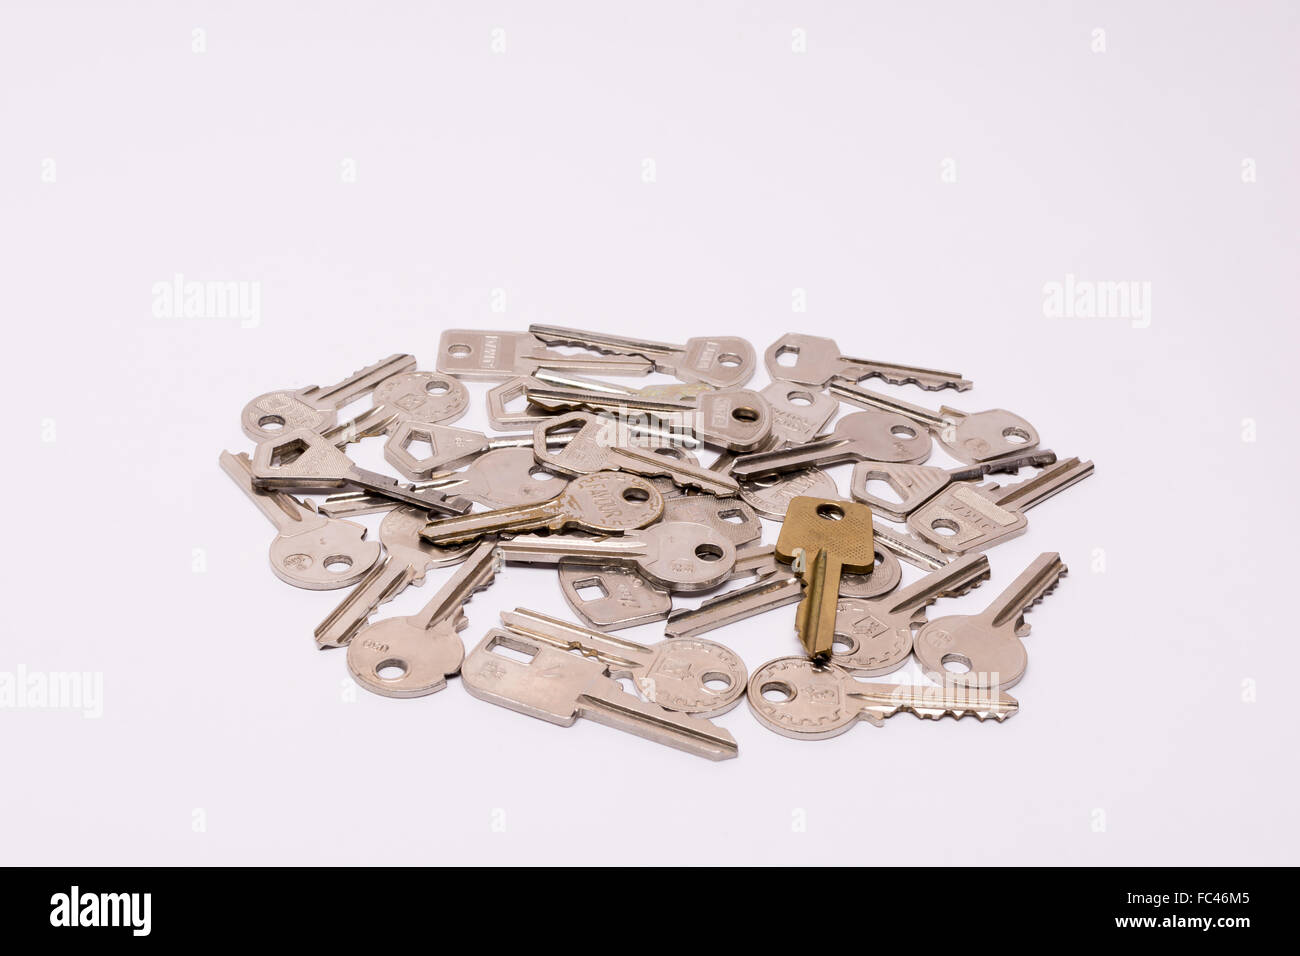 Old keys arranged on a while background - Stock Image